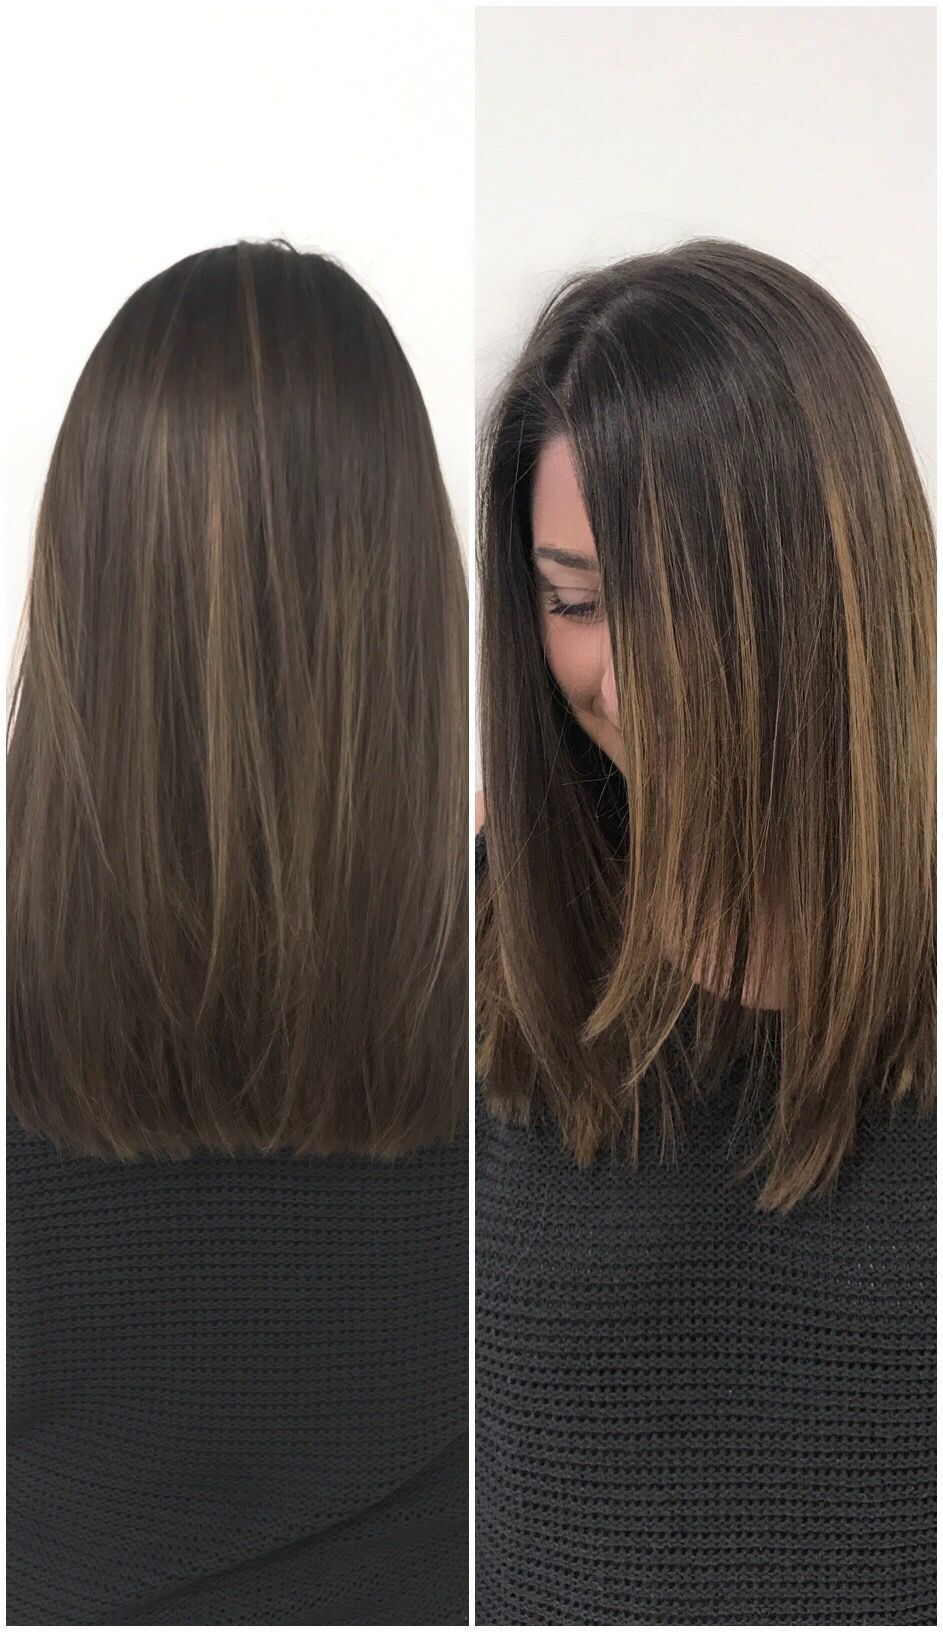 The Perfect Fall Haircut And Color For Medium Length Brown Hair So